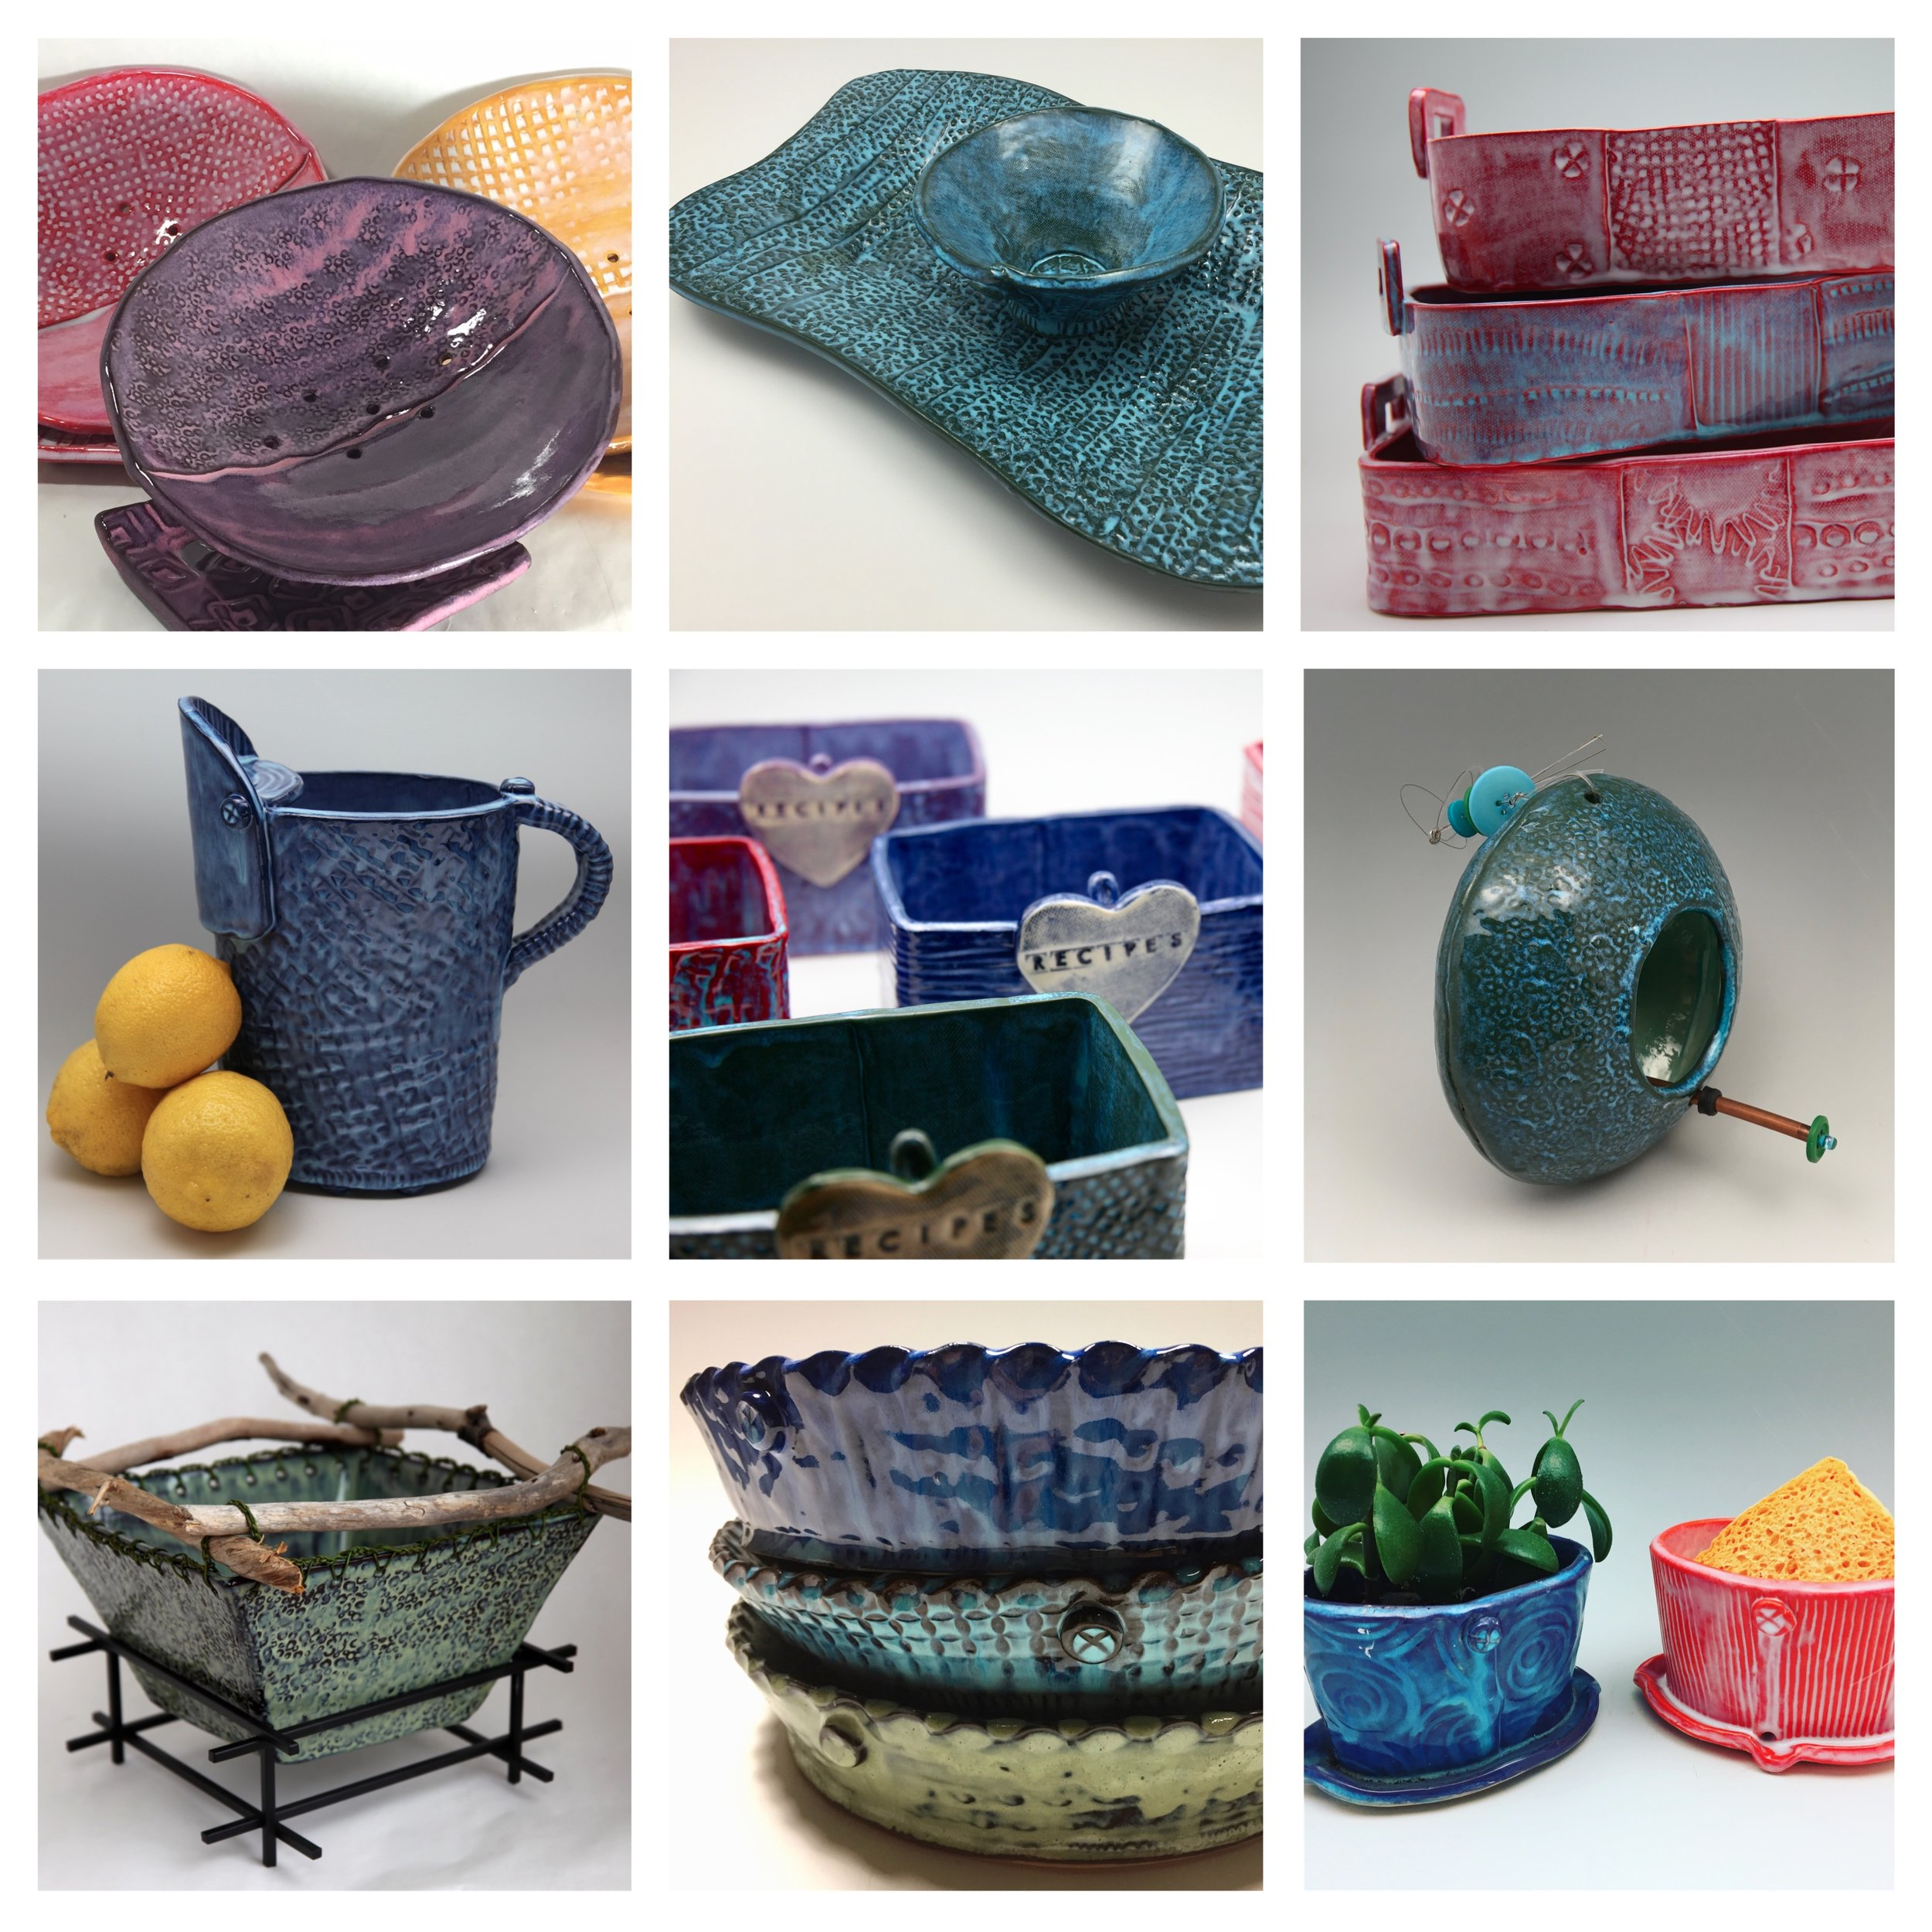 Here are some of the ClayByLaura pieces I've chosen to bring with me to Panoply.